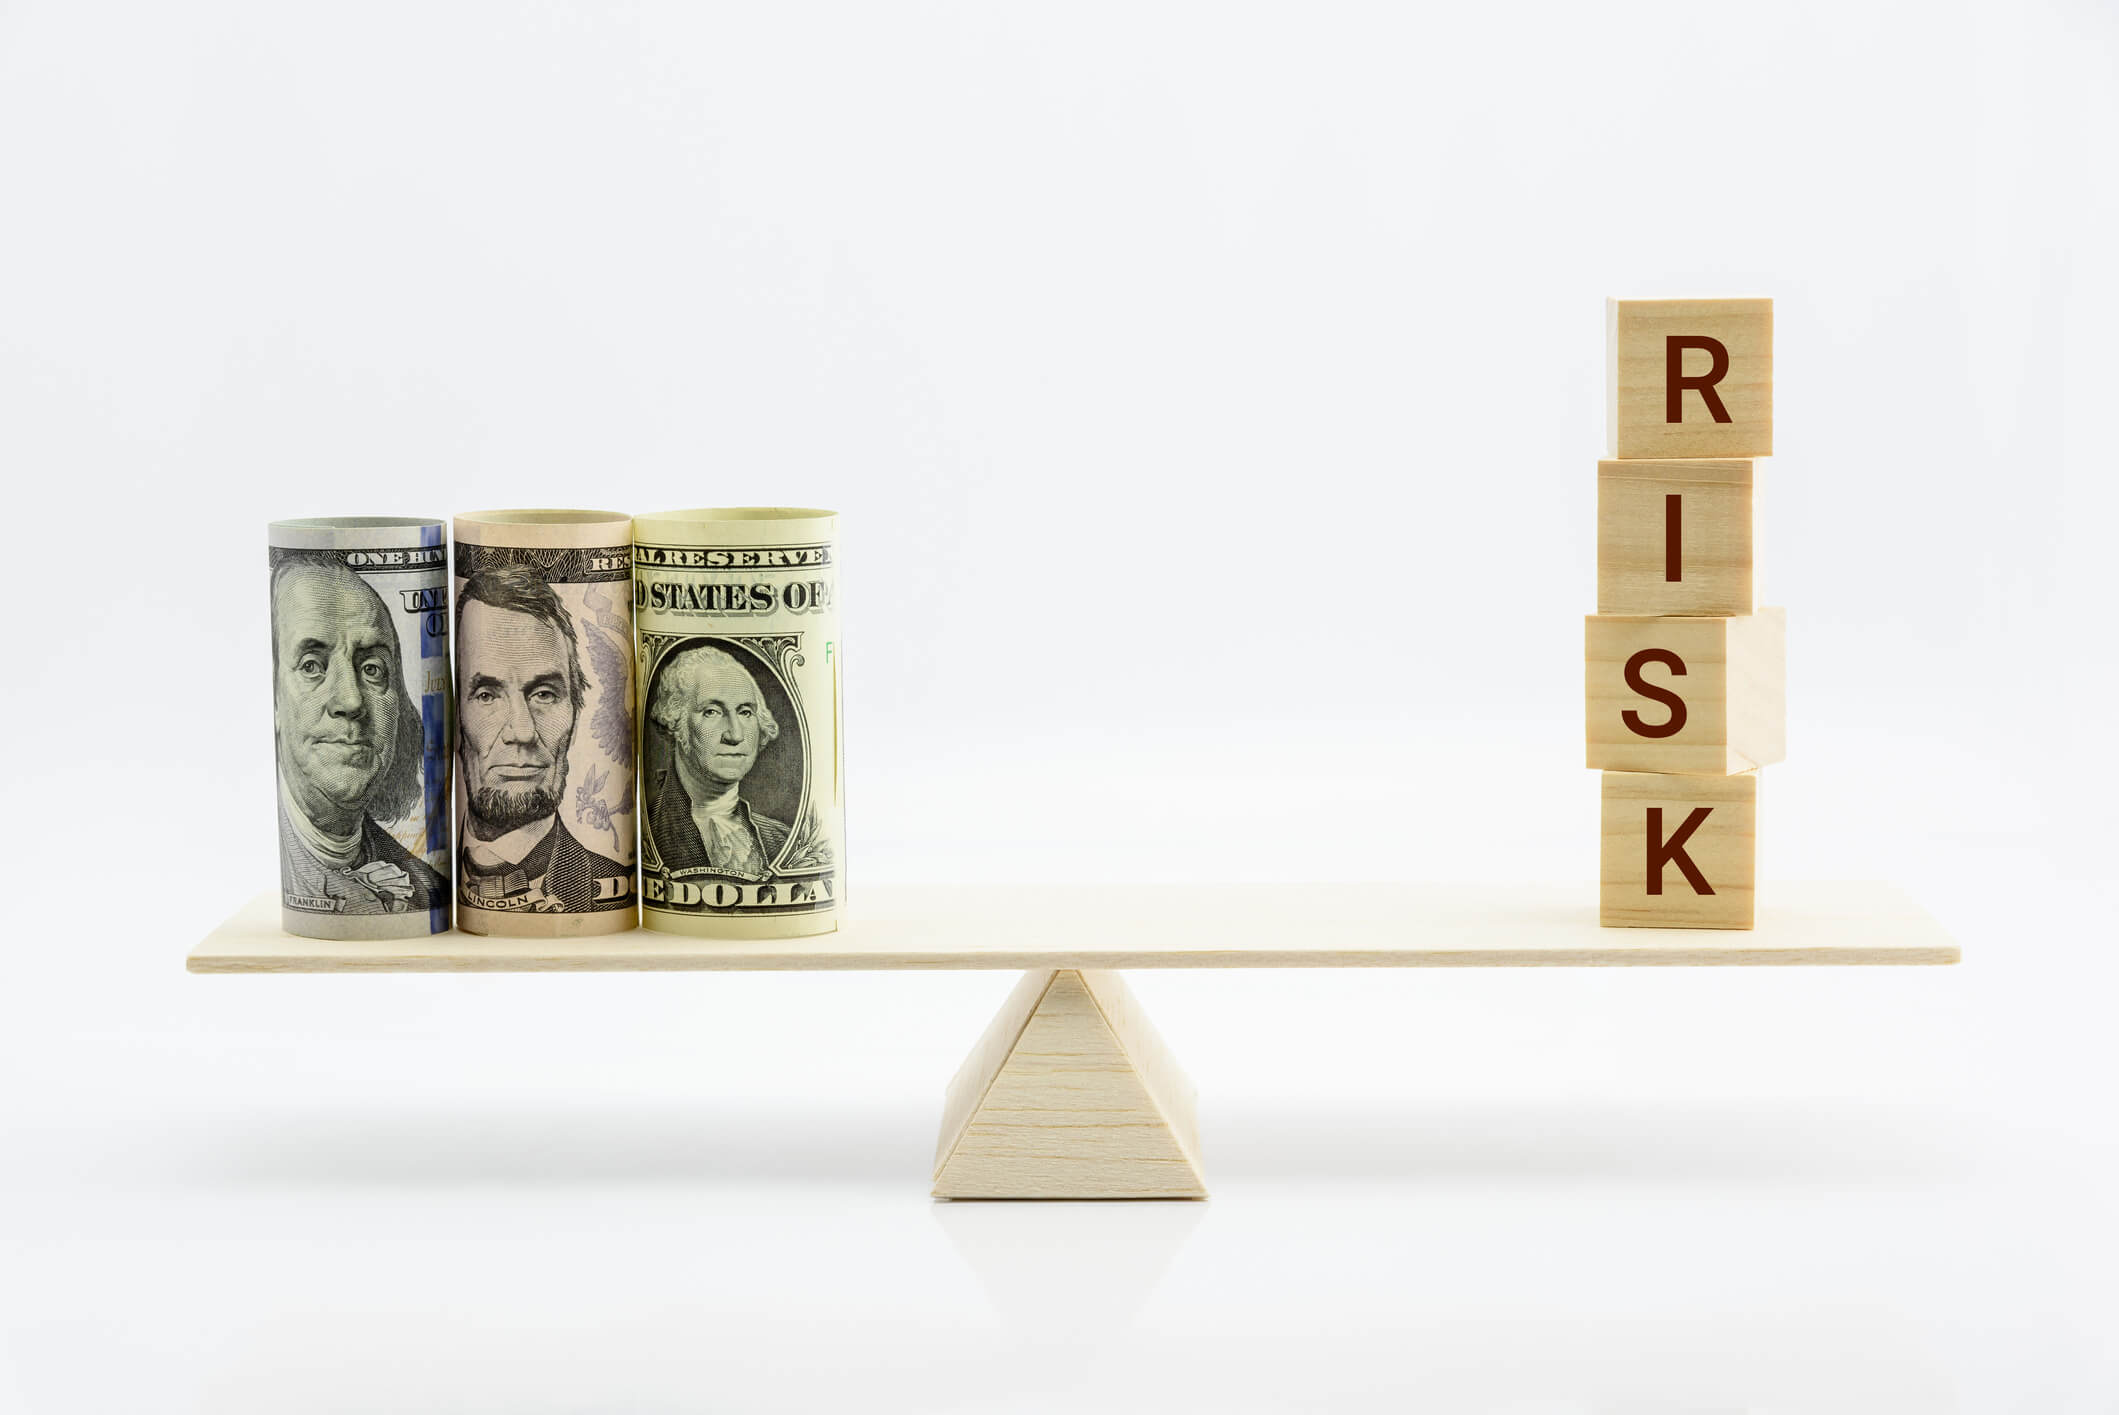 High Investment Risks - Complete Controller